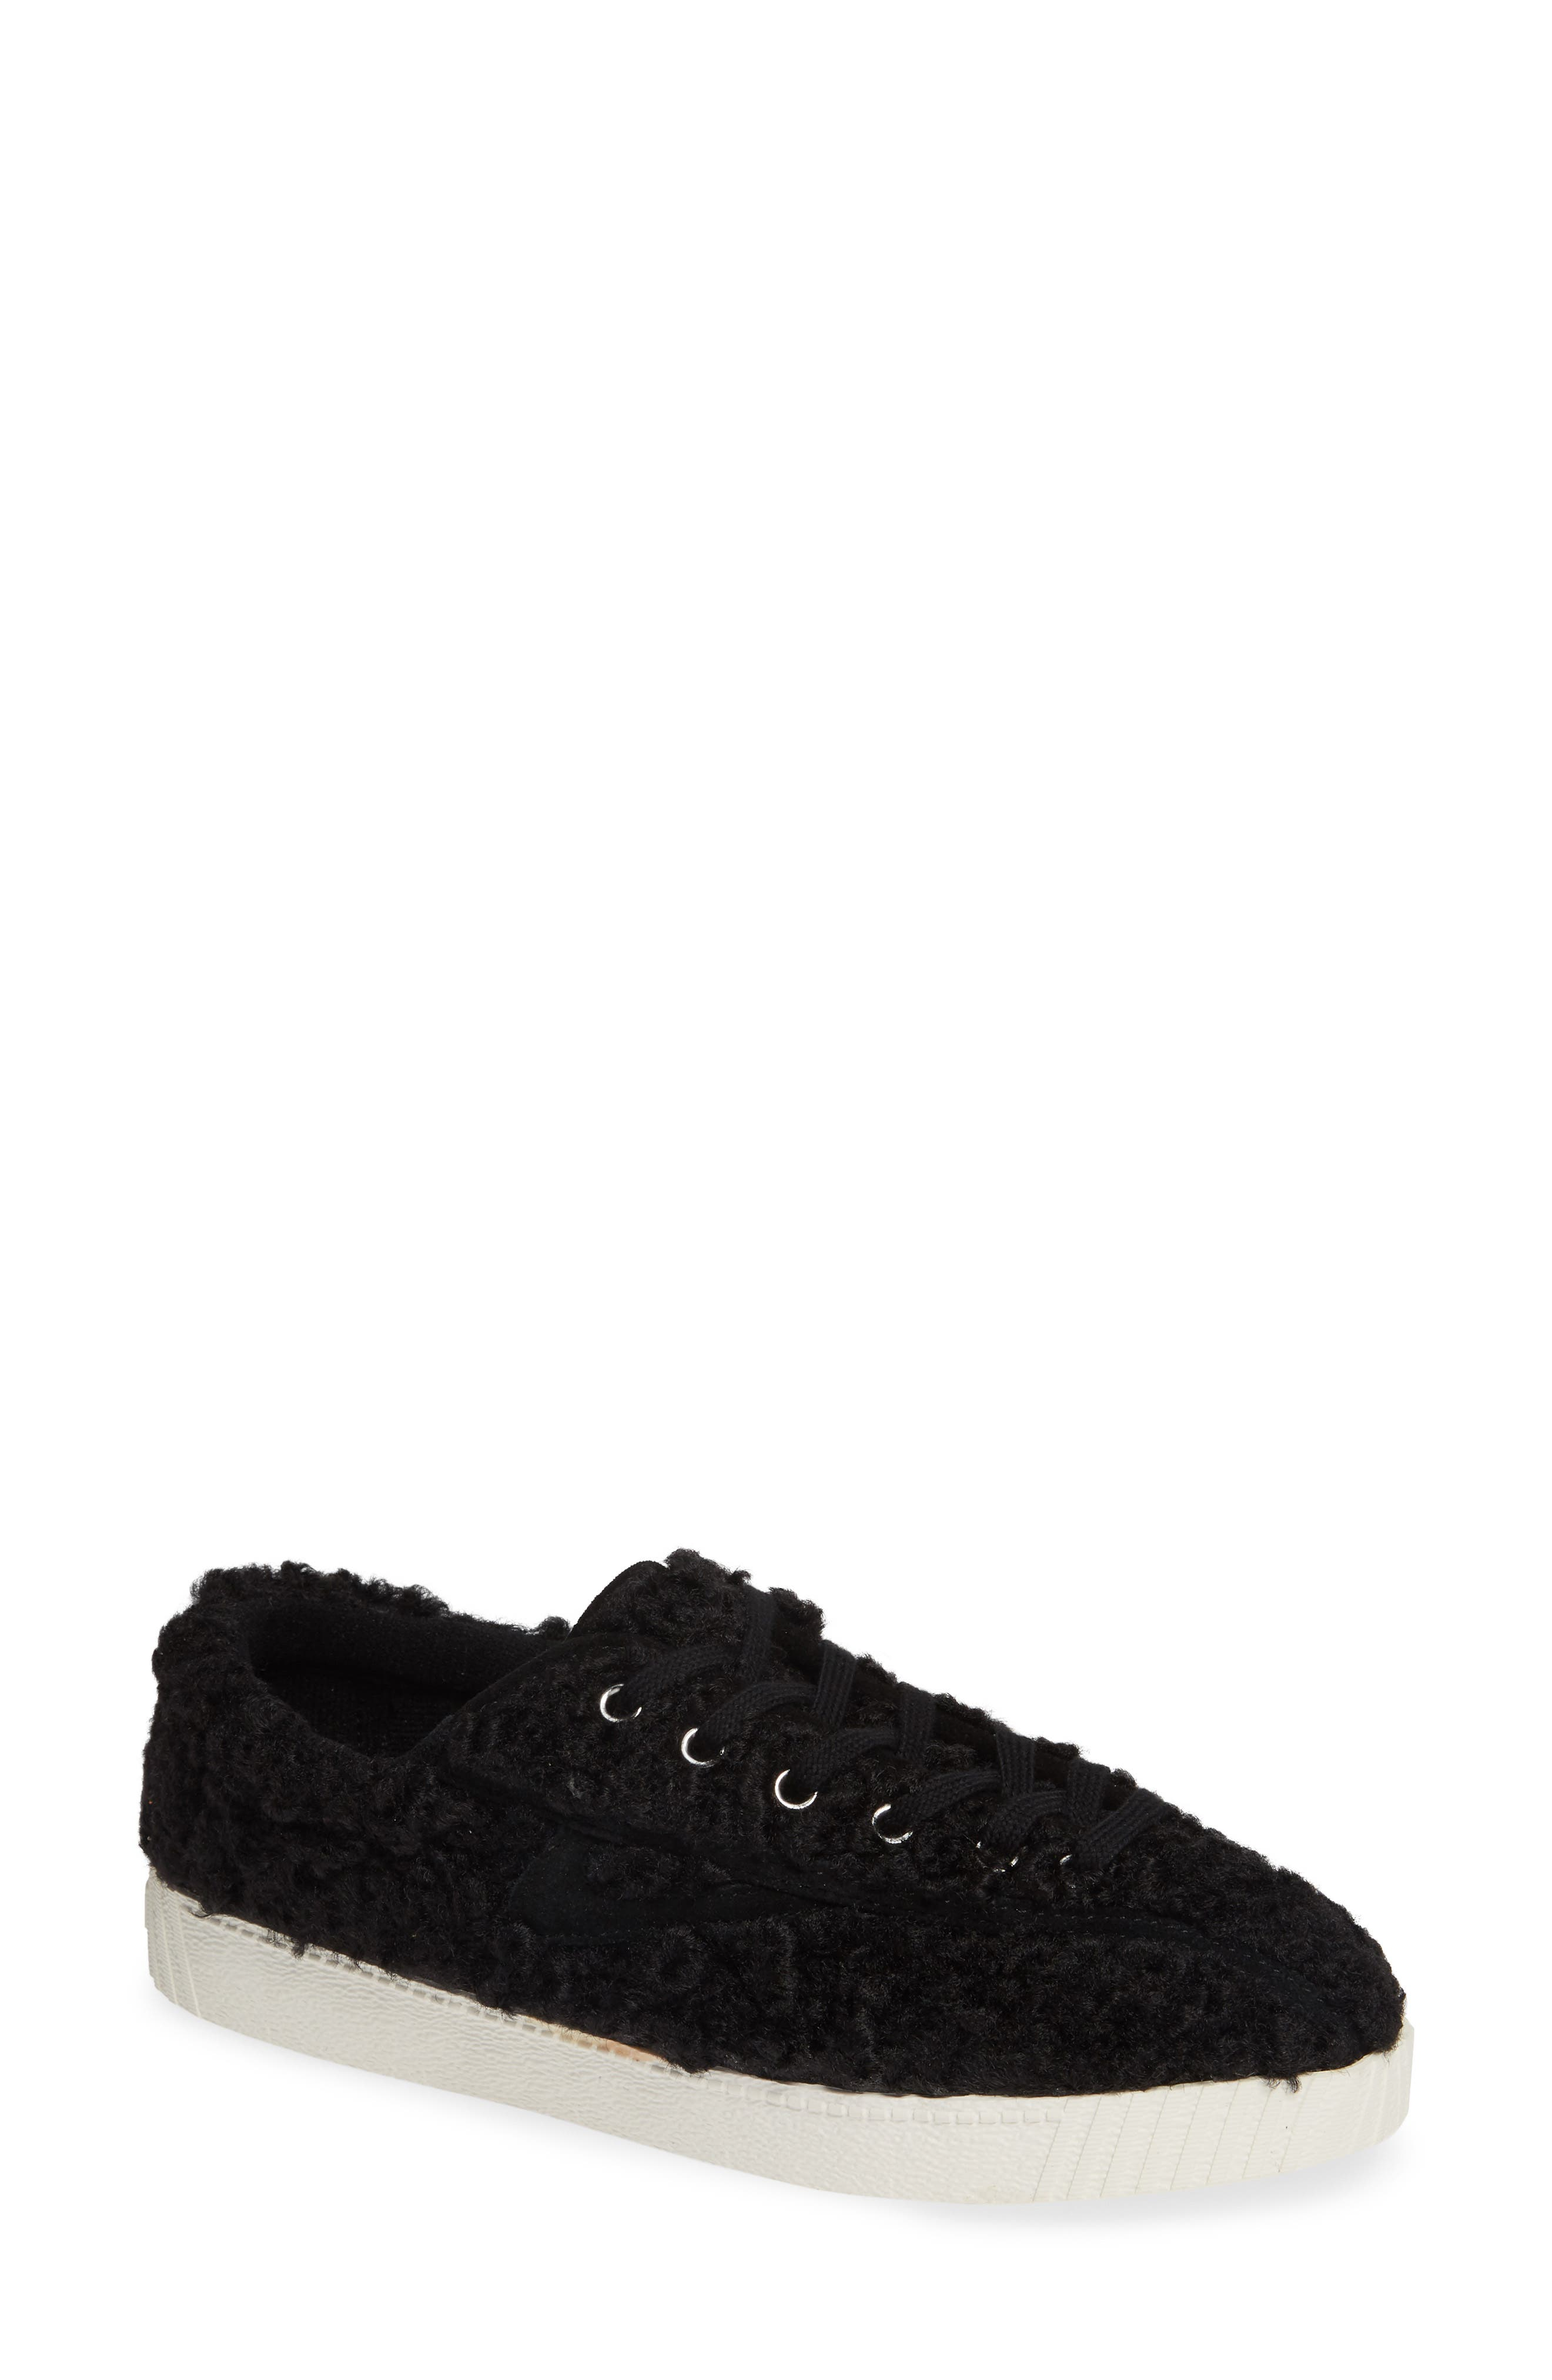 Nylite Faux-Shearling Sneakers in Black